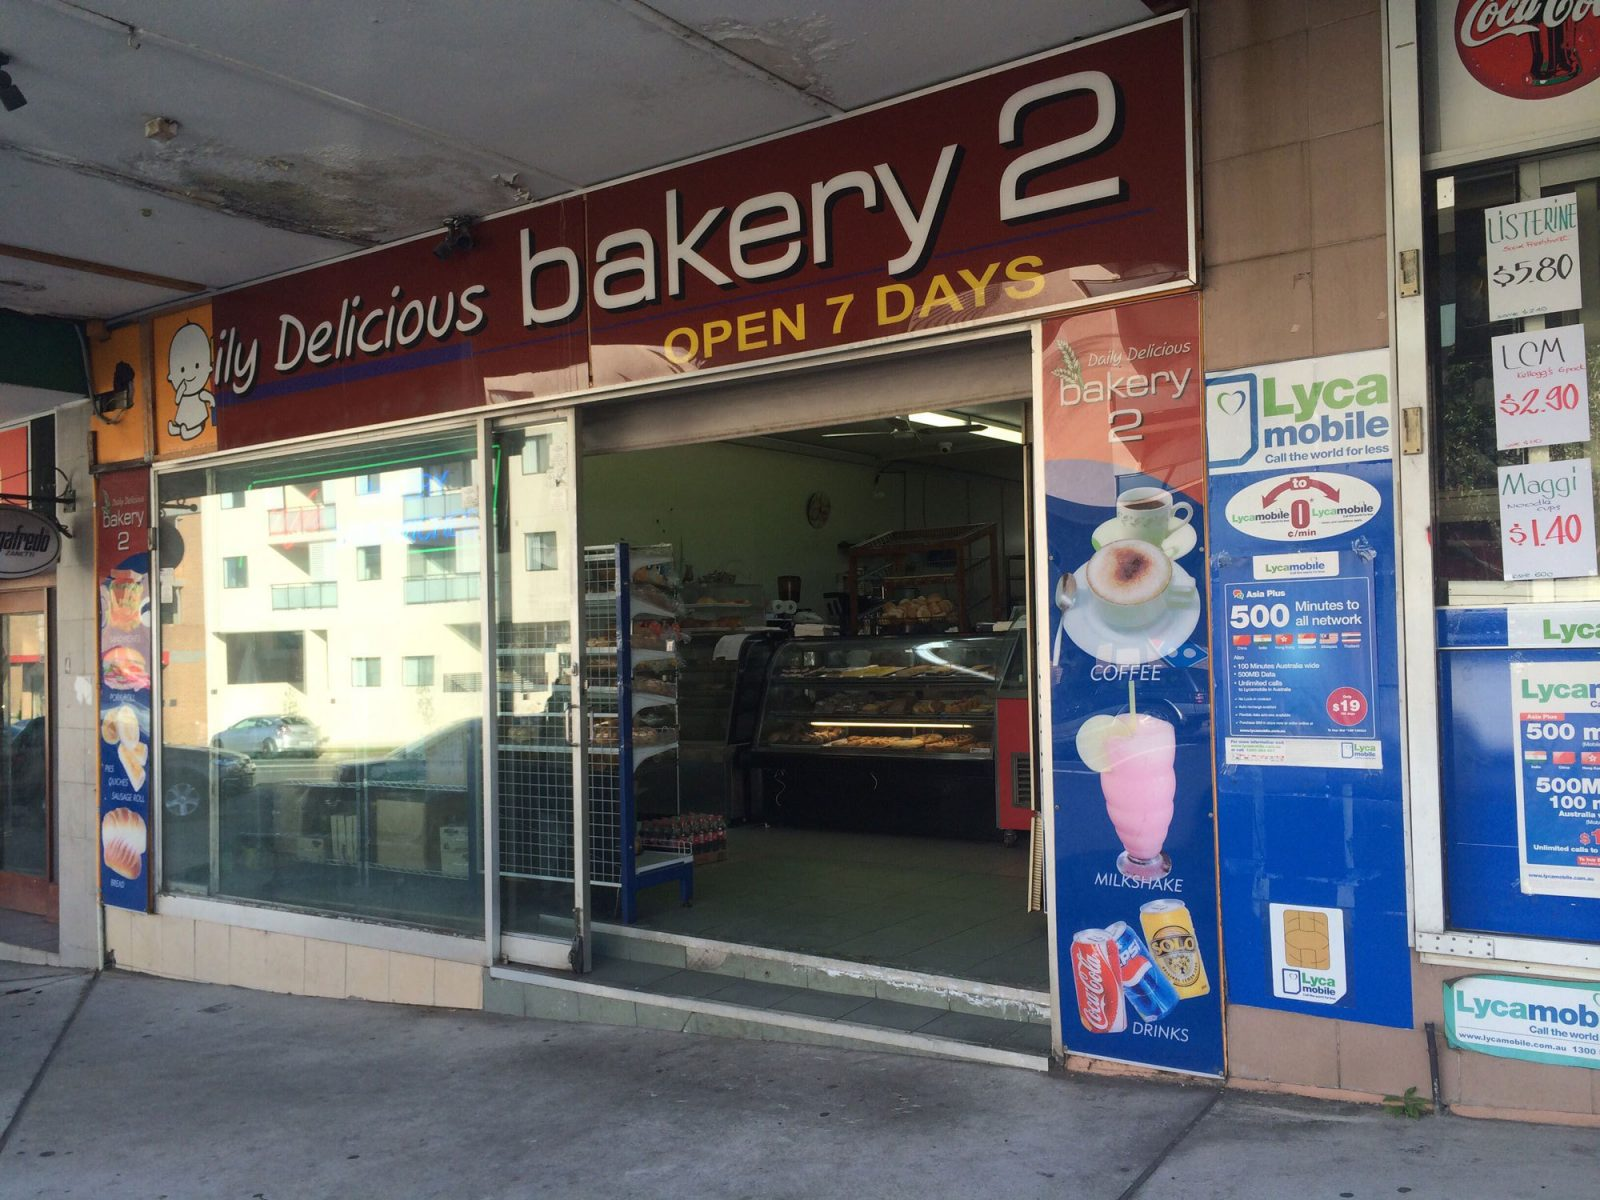 Daily Delicious Bakery 2